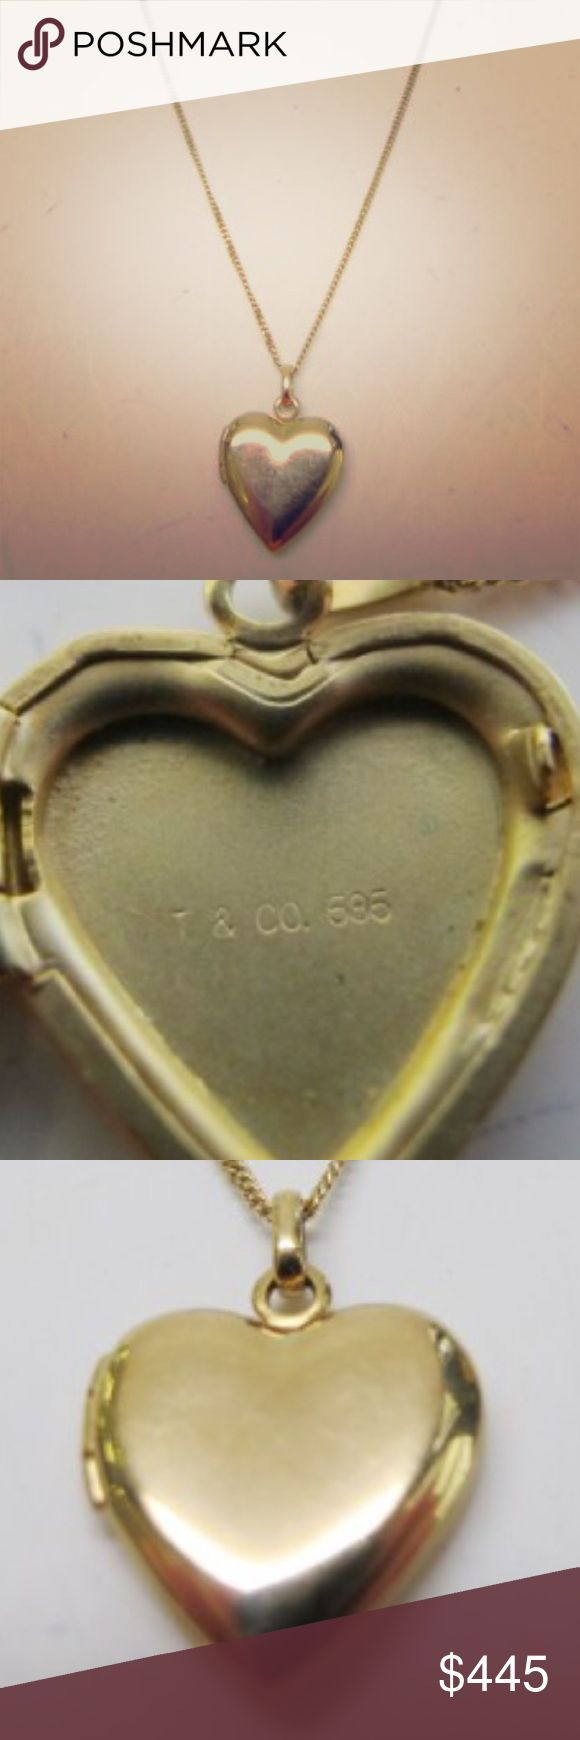 "Tiffany & Co 14 KT Gold Heart Locket on 16"" chain Available soon!!! Tiffany & Co 14 KT gold heart shaped locket, on a 16"" chain (also Tiffany). Will consider selling separately though. Will come with Tiffany box as well. More pictures will be posted soon  Tiffany & Co. Jewelry Necklaces"